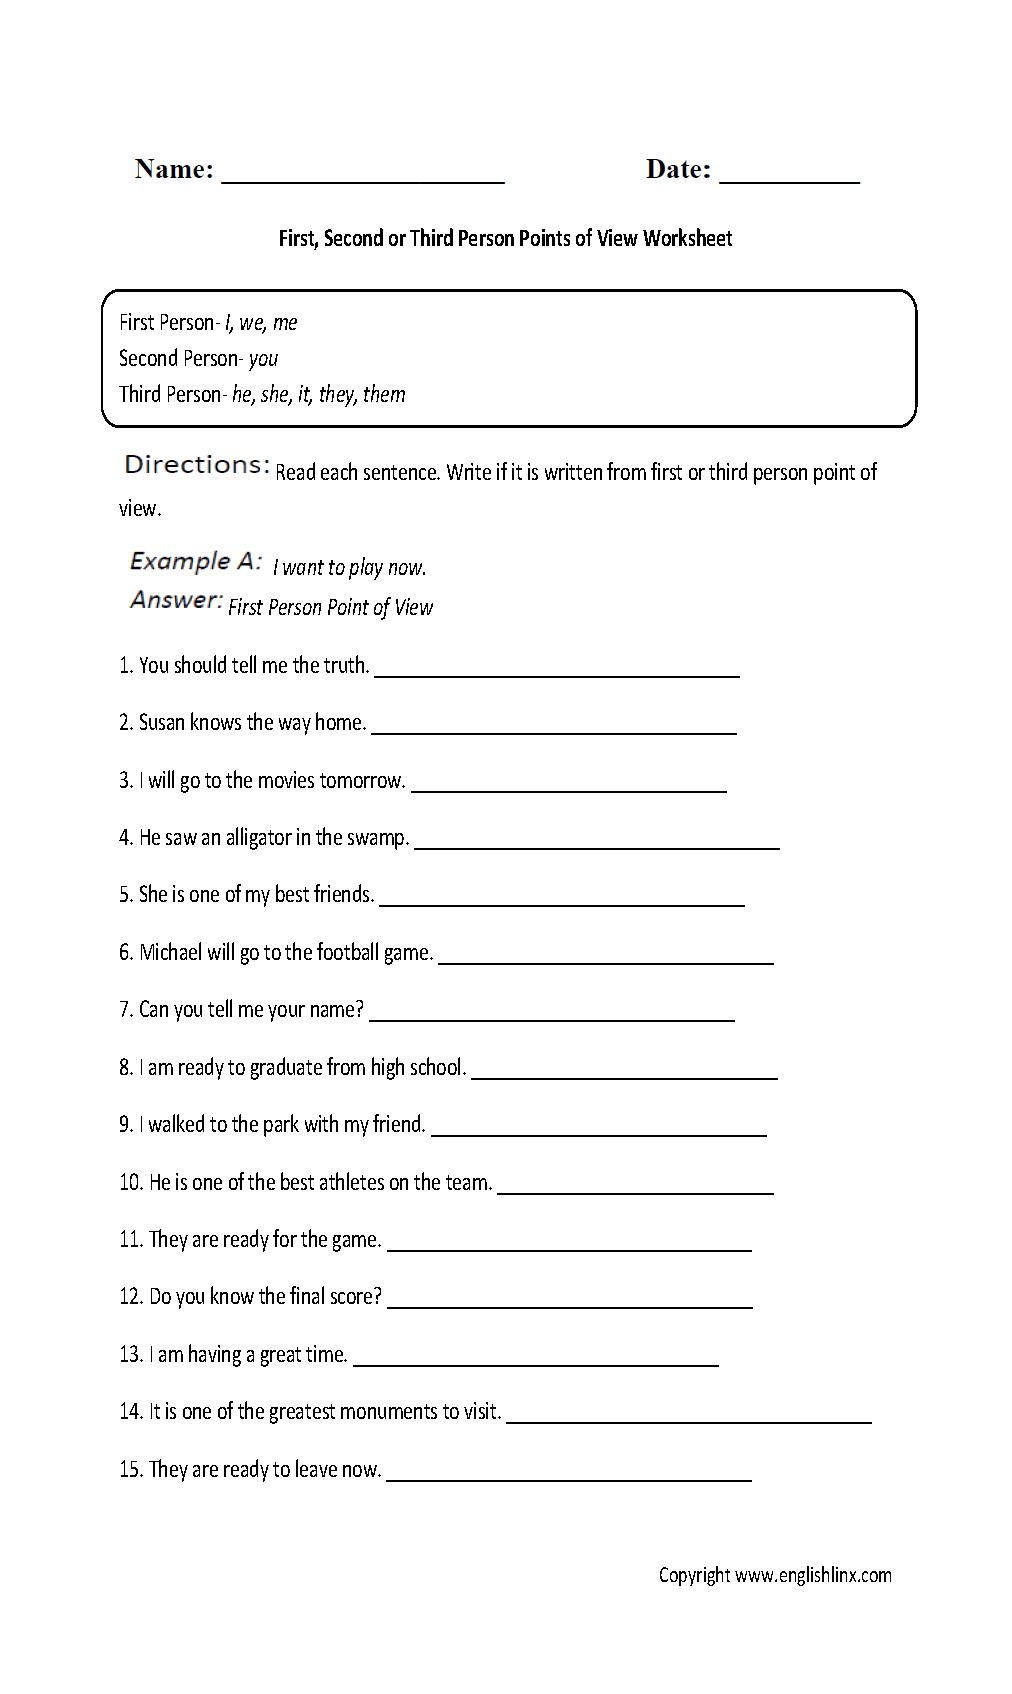 Proatmealus  Outstanding Englishlinxcom  Point Of View Worksheets With Engaging Point Of View Worksheet With Attractive First Grade Preposition Worksheets Also Eight Times Table Worksheet In Addition Making Friends Worksheet And D Worksheet As Well As Free Worksheets For Preschoolers Trace Additionally Reading For First Grade Worksheets From Englishlinxcom With Proatmealus  Engaging Englishlinxcom  Point Of View Worksheets With Attractive Point Of View Worksheet And Outstanding First Grade Preposition Worksheets Also Eight Times Table Worksheet In Addition Making Friends Worksheet From Englishlinxcom